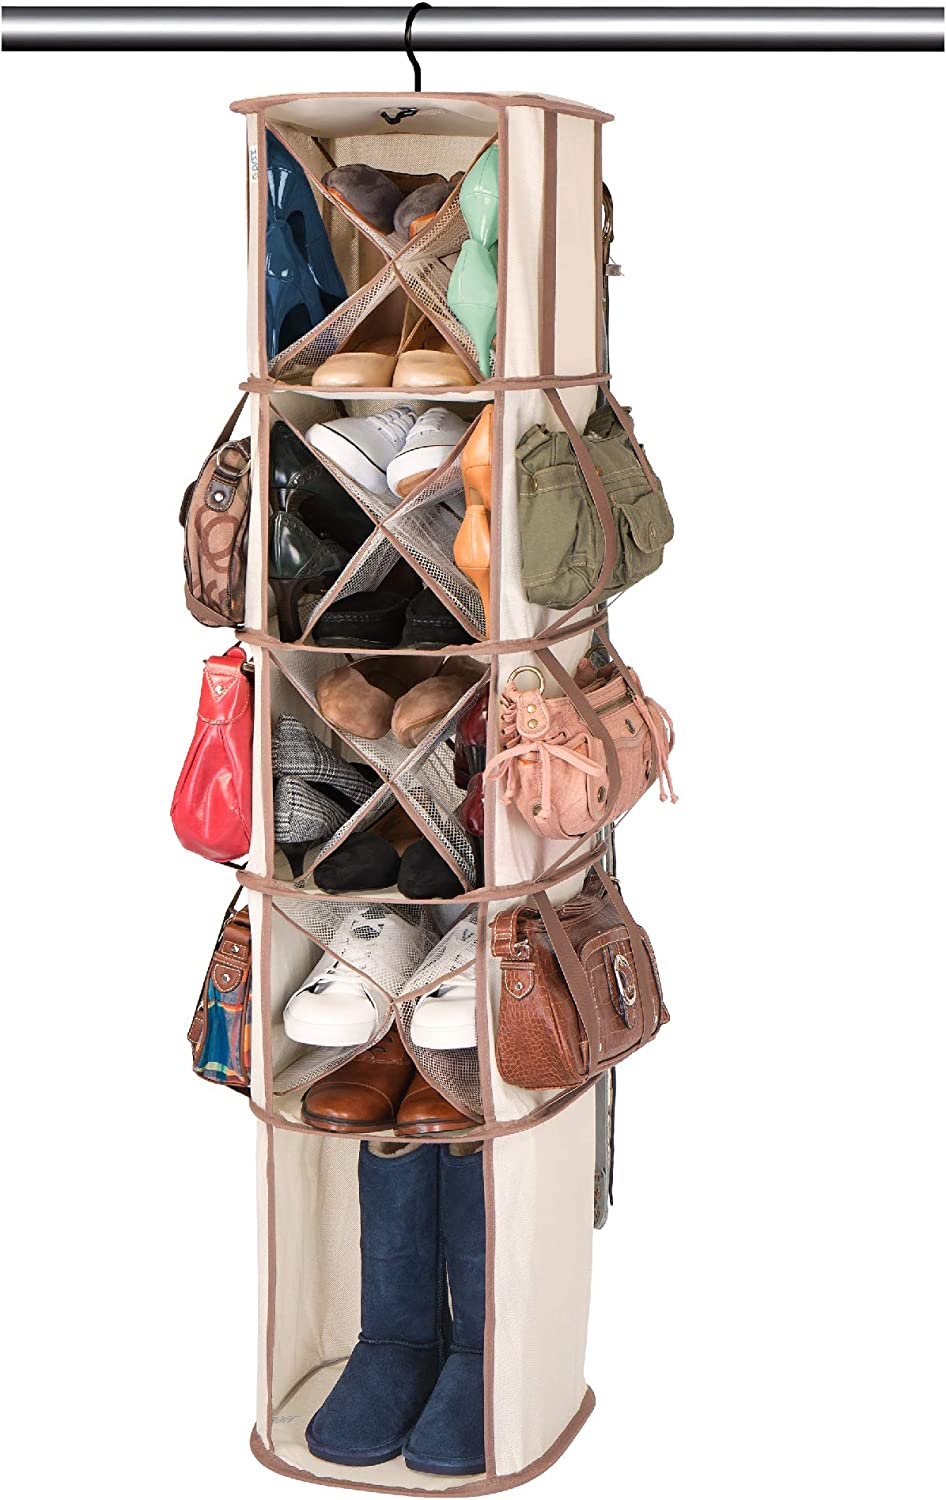 Smart Design Hanging Smart Carousel Organizer w/ Pockets & Steel Metal Hook - 360 Degree Swivel - Heavy Duty Fabric - Clothing, Shoes, & Closet - Home Organization (5-Tier, 16-Pockets)